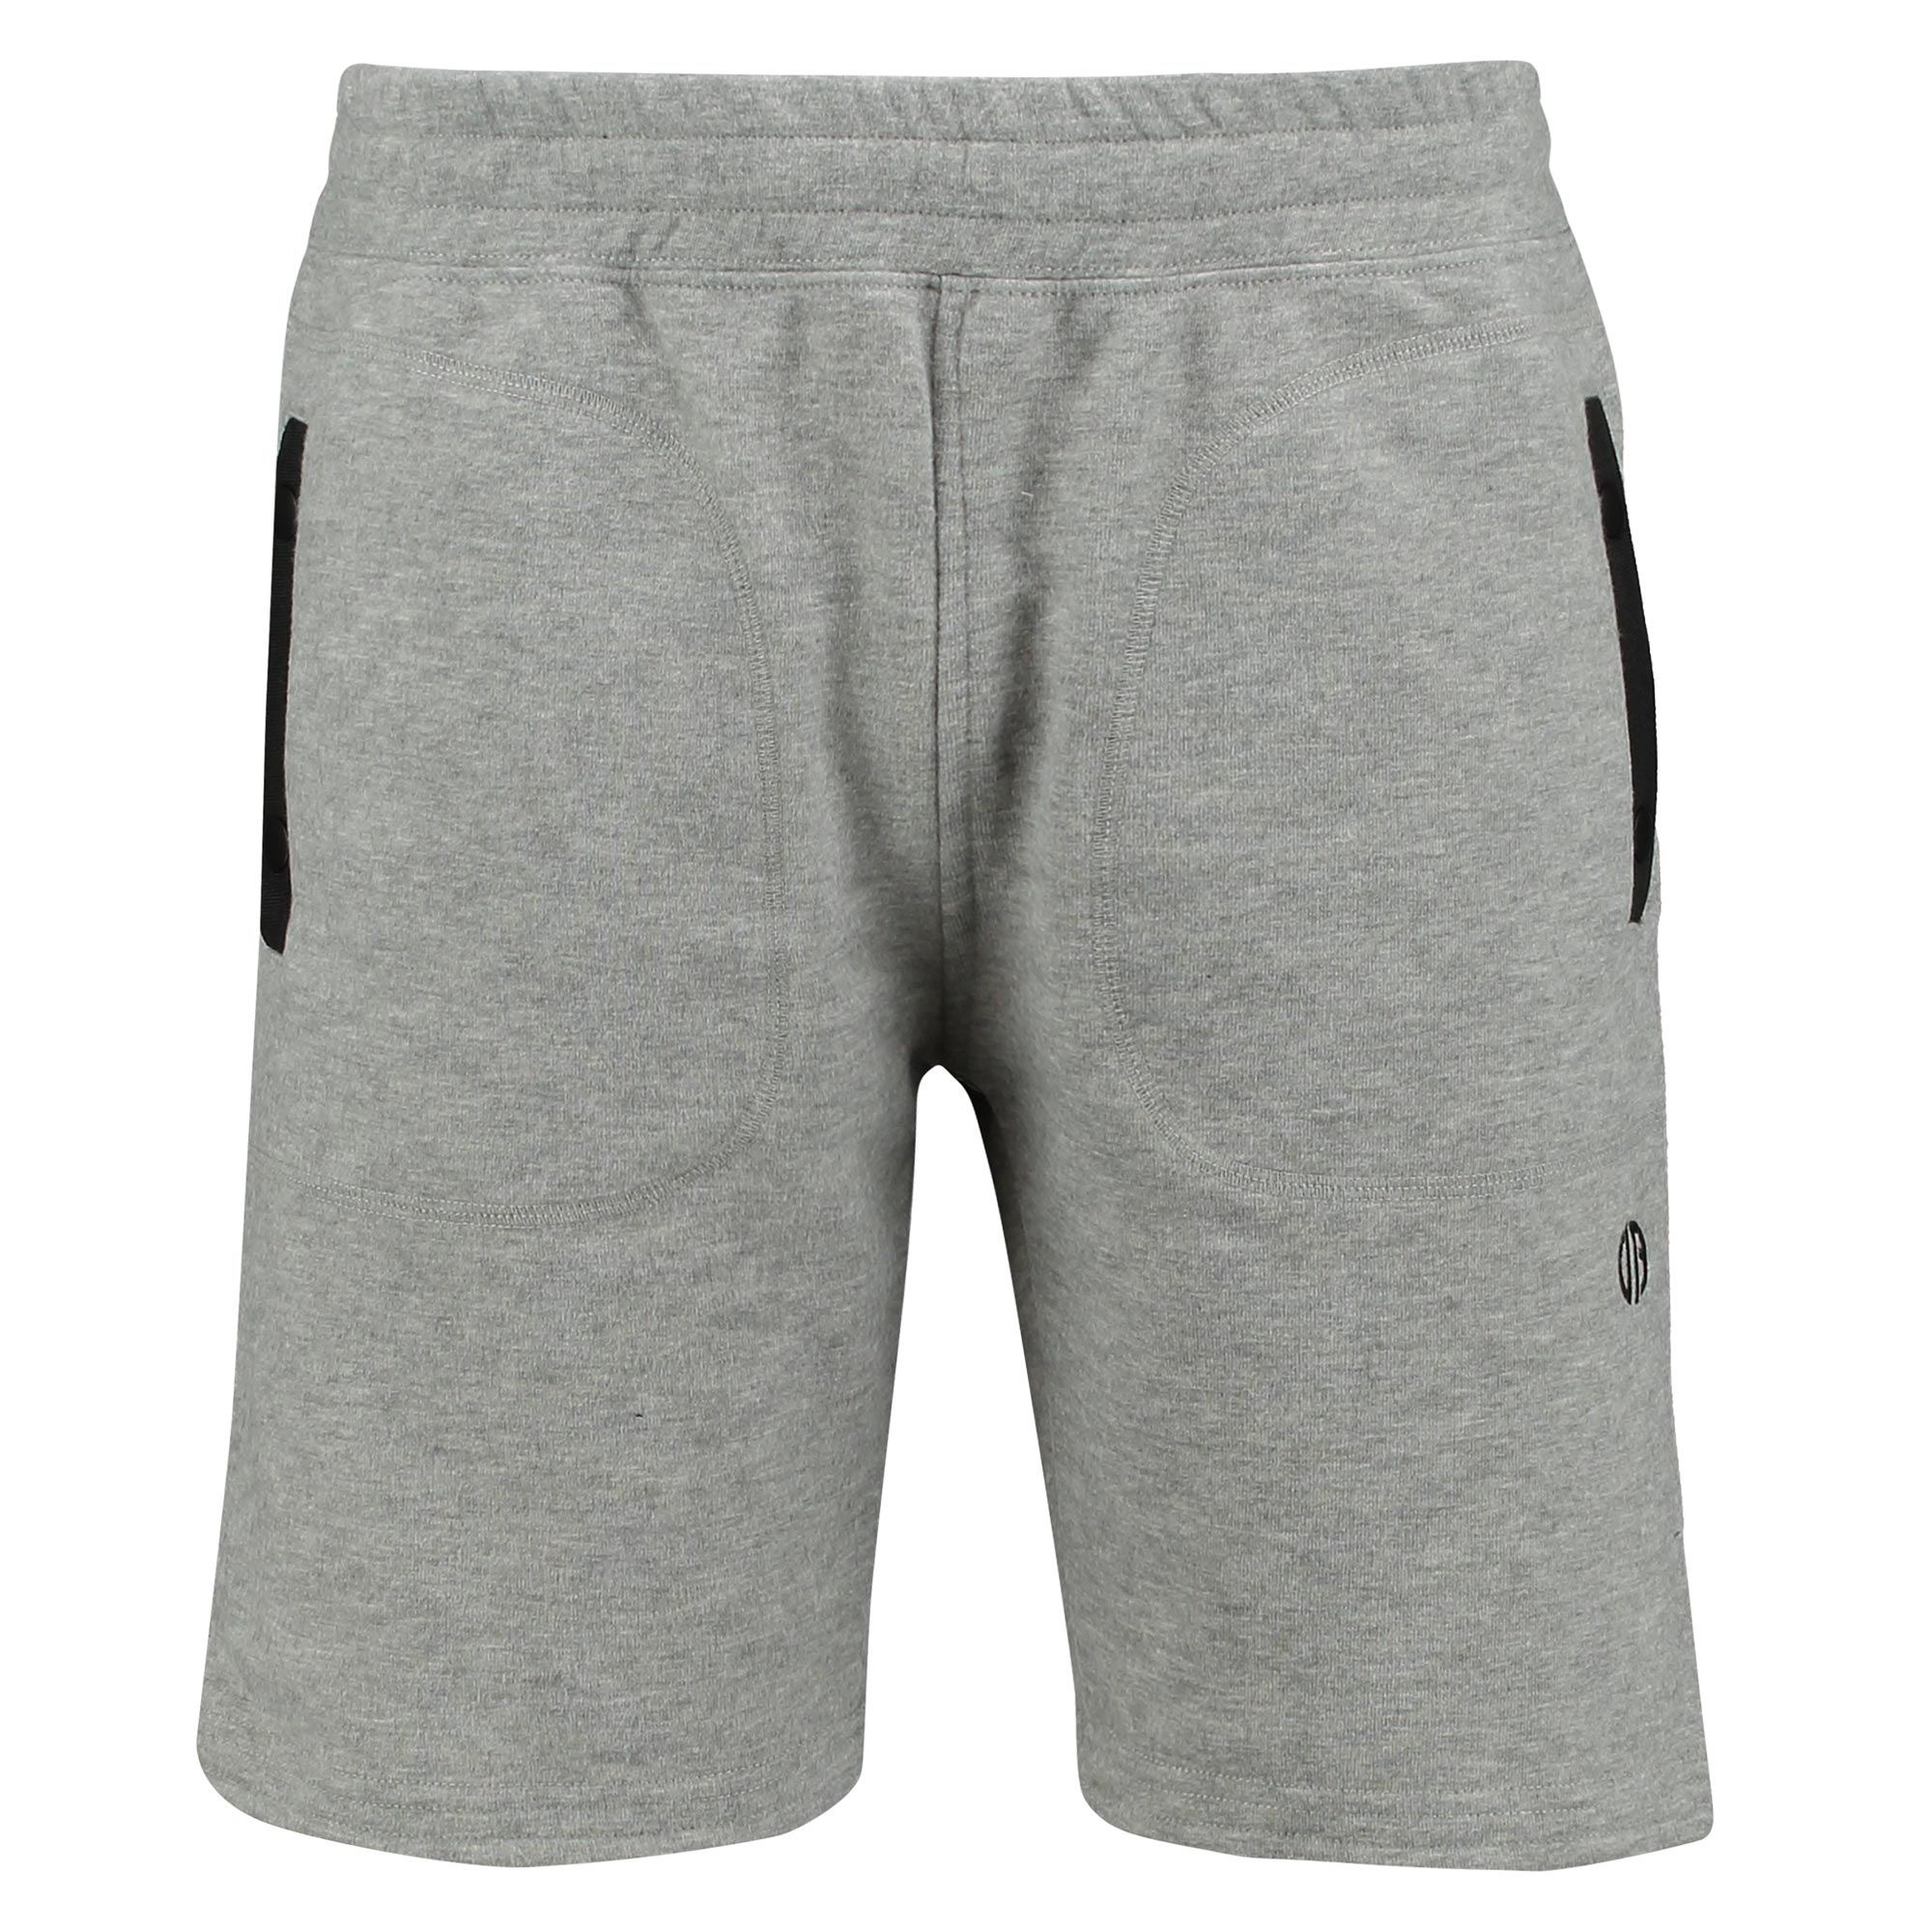 Manchester City Terrace Jog Shorts - Grey Marl